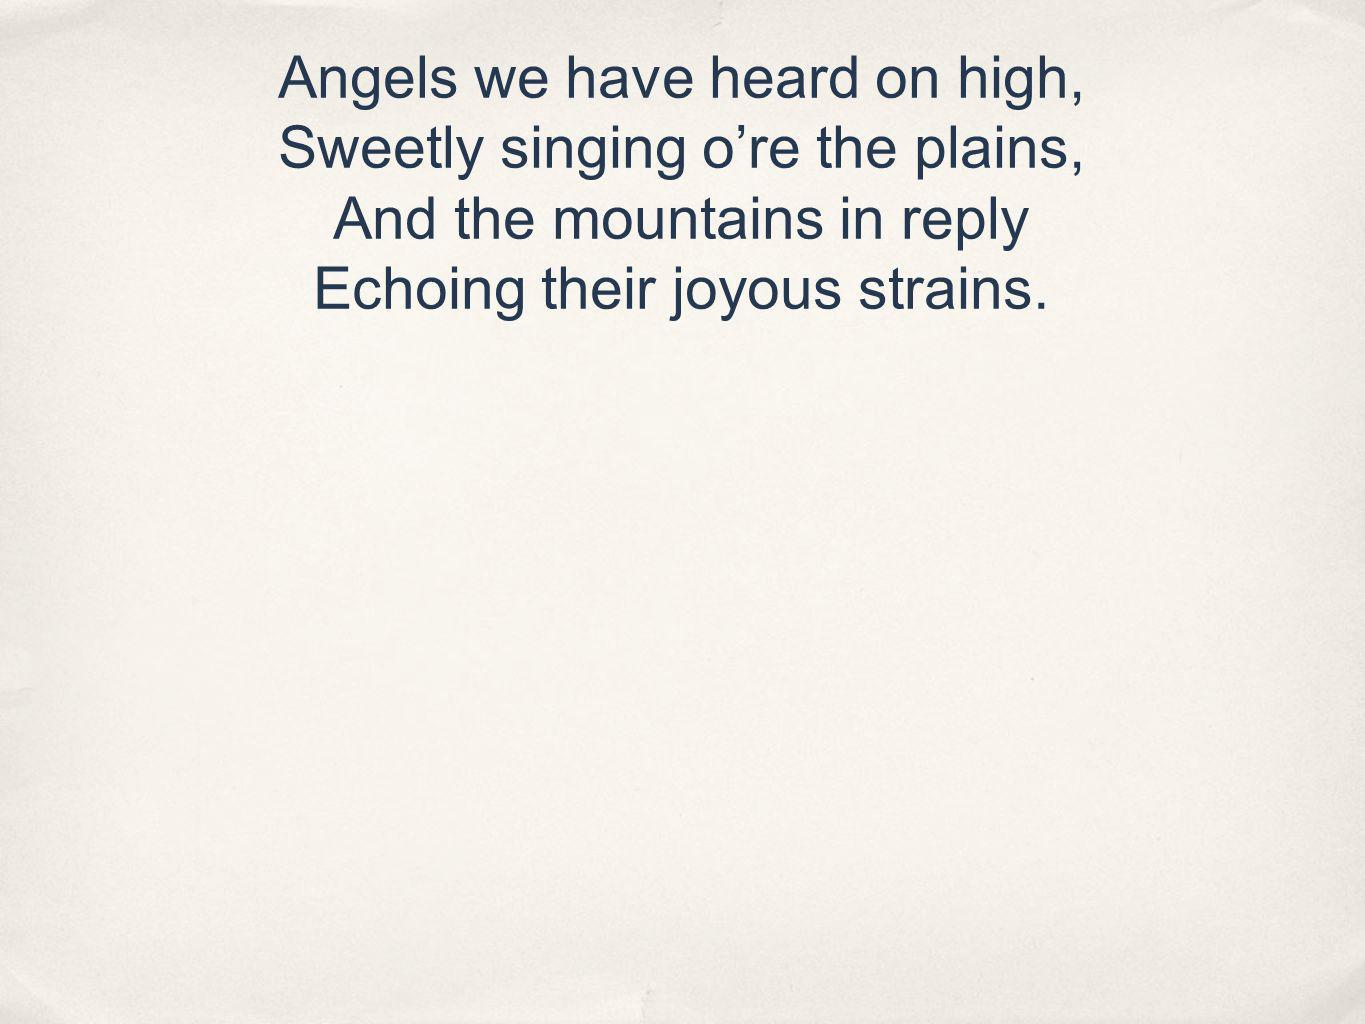 Angels we have heard on high, Sweetly singing ore the plains, And the mountains in reply Echoing their joyous strains.